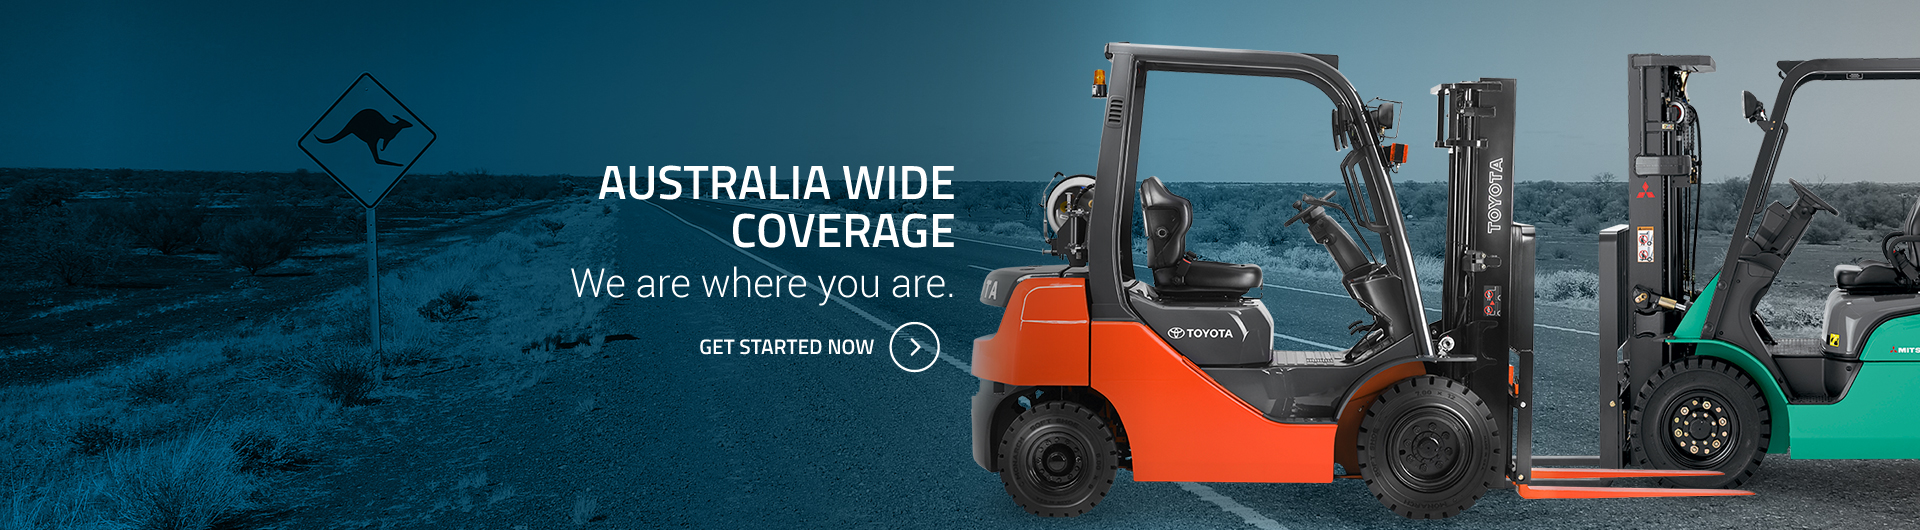 Formidable Forklifts - Sell used Forklifts Australia wide